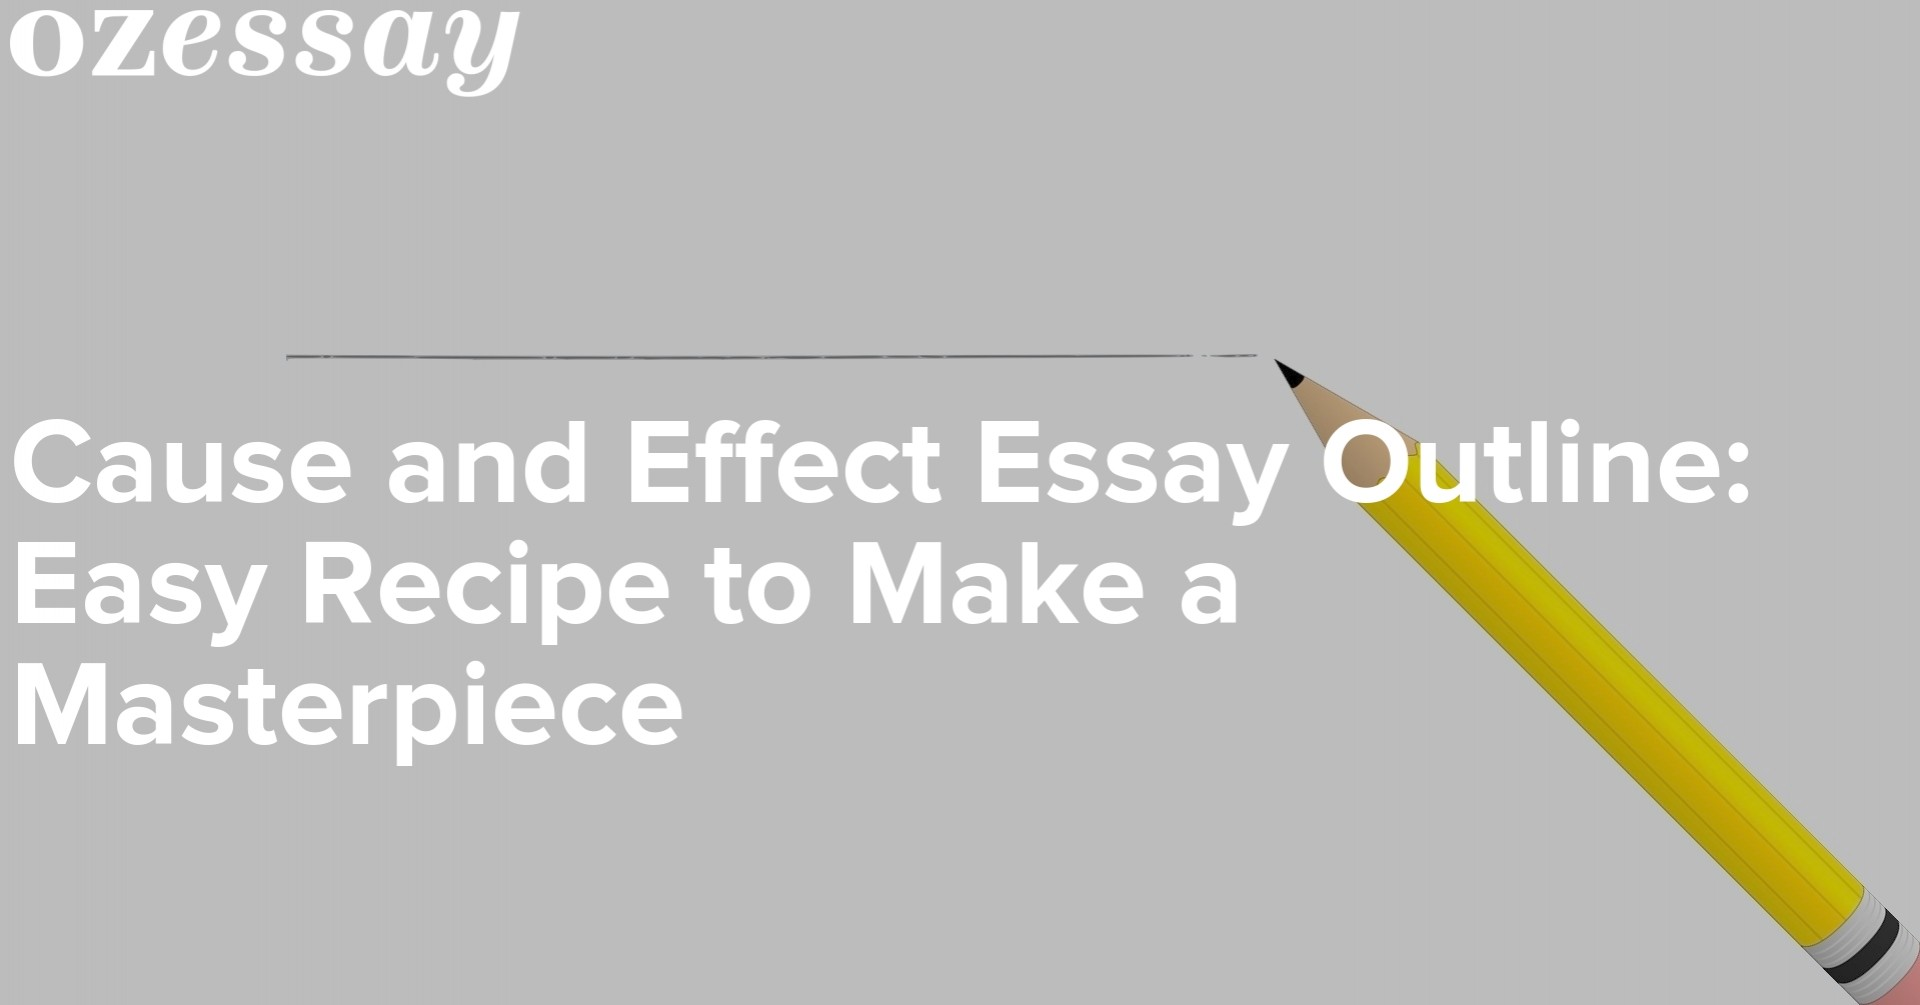 016 Essay Example Maker Cause And Effect Outline Ozessayv1495699202 Breathtaking Cheap Philippines 1920